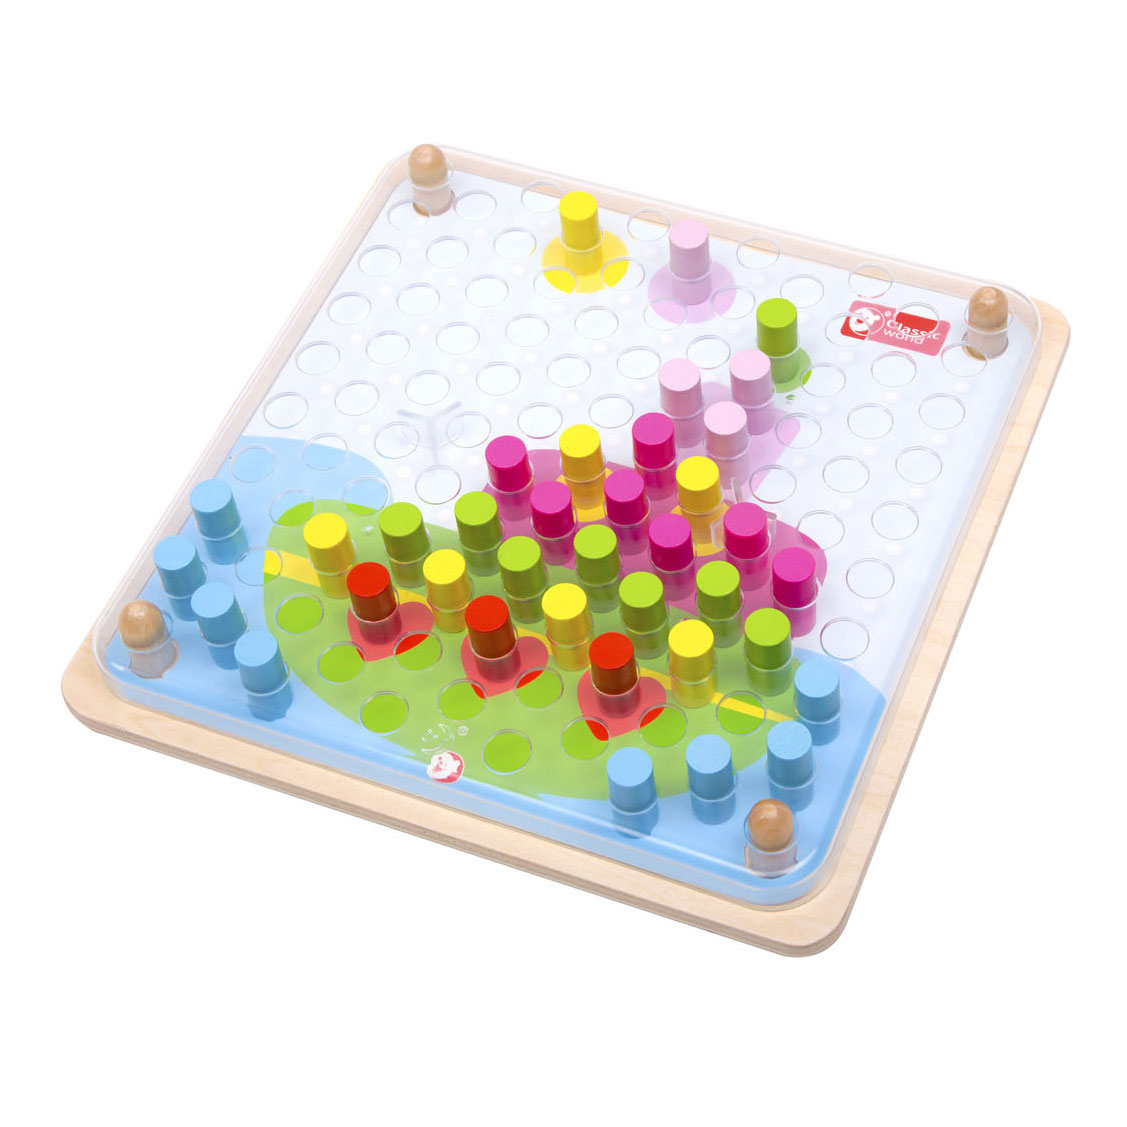 Classic World Houten Puzzel Pinnen, 63dlg.